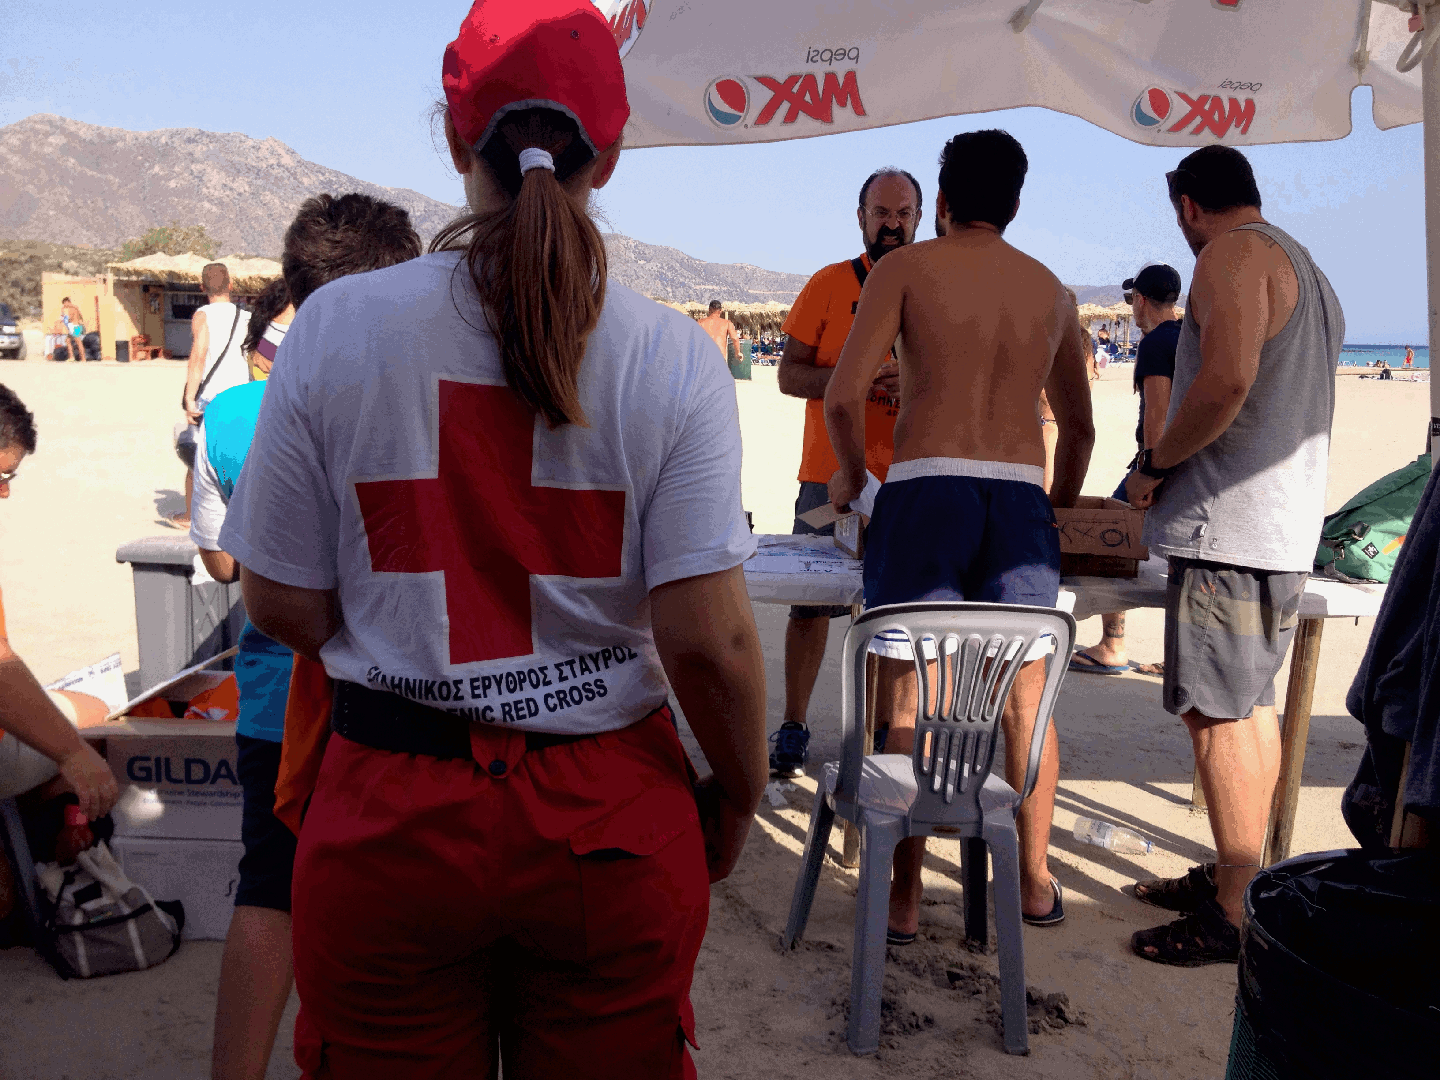 Red cross in the house